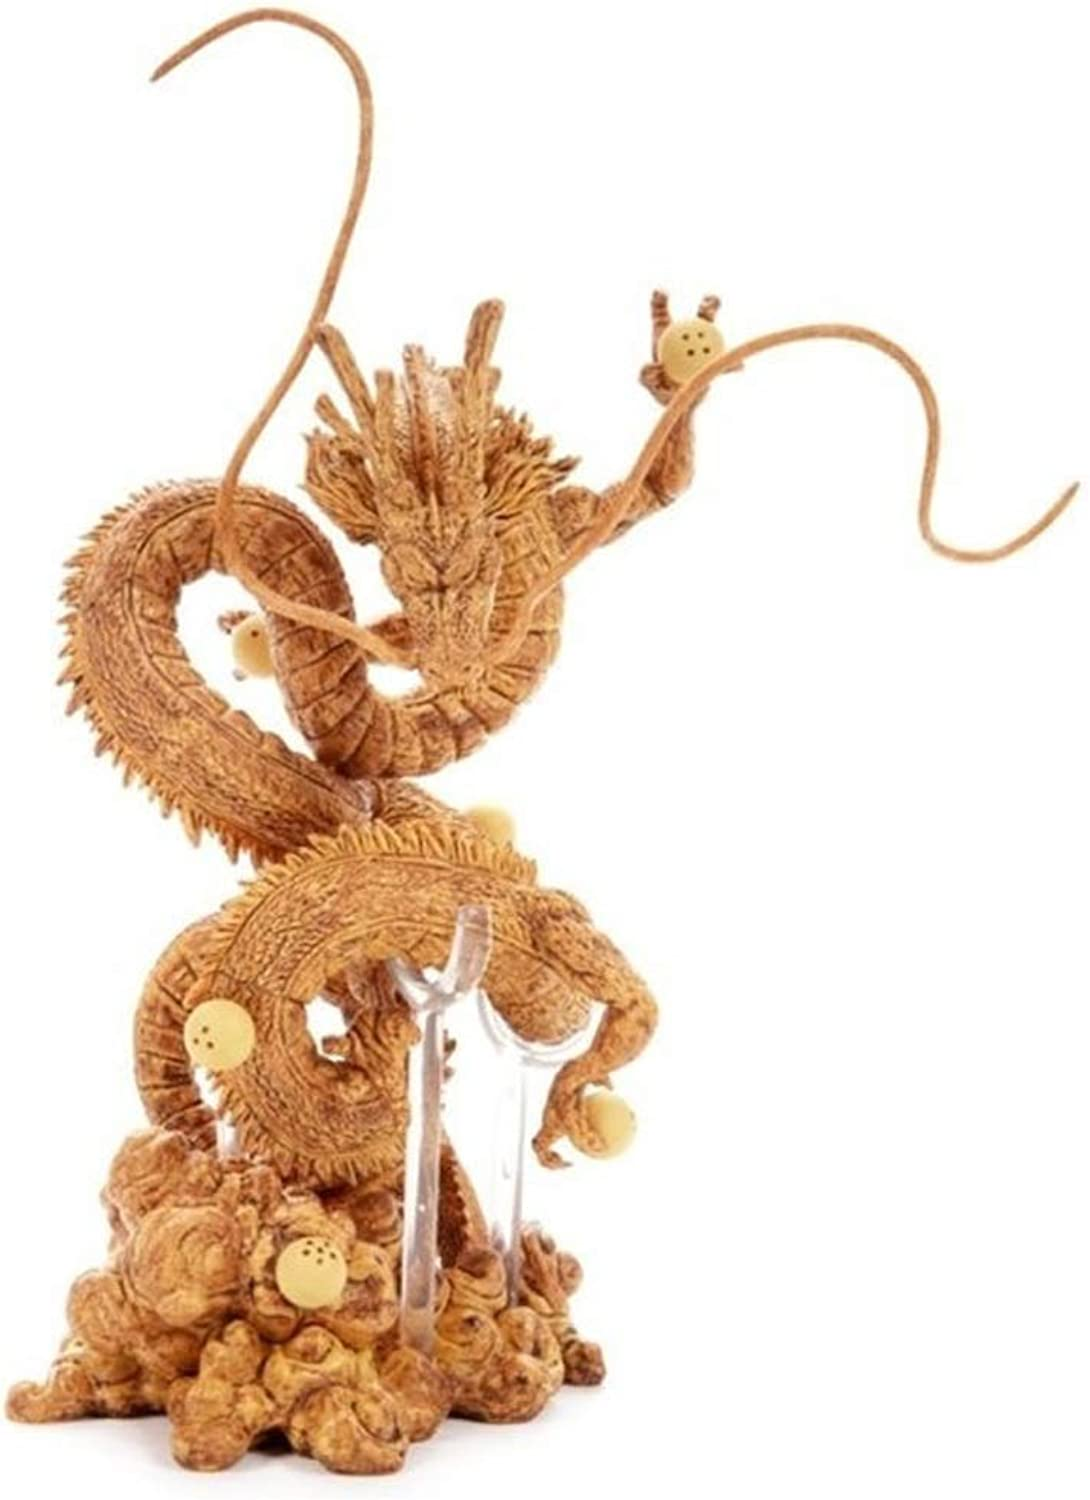 God Dragon gold Dragon PVC Action Model About 8.2 Inches